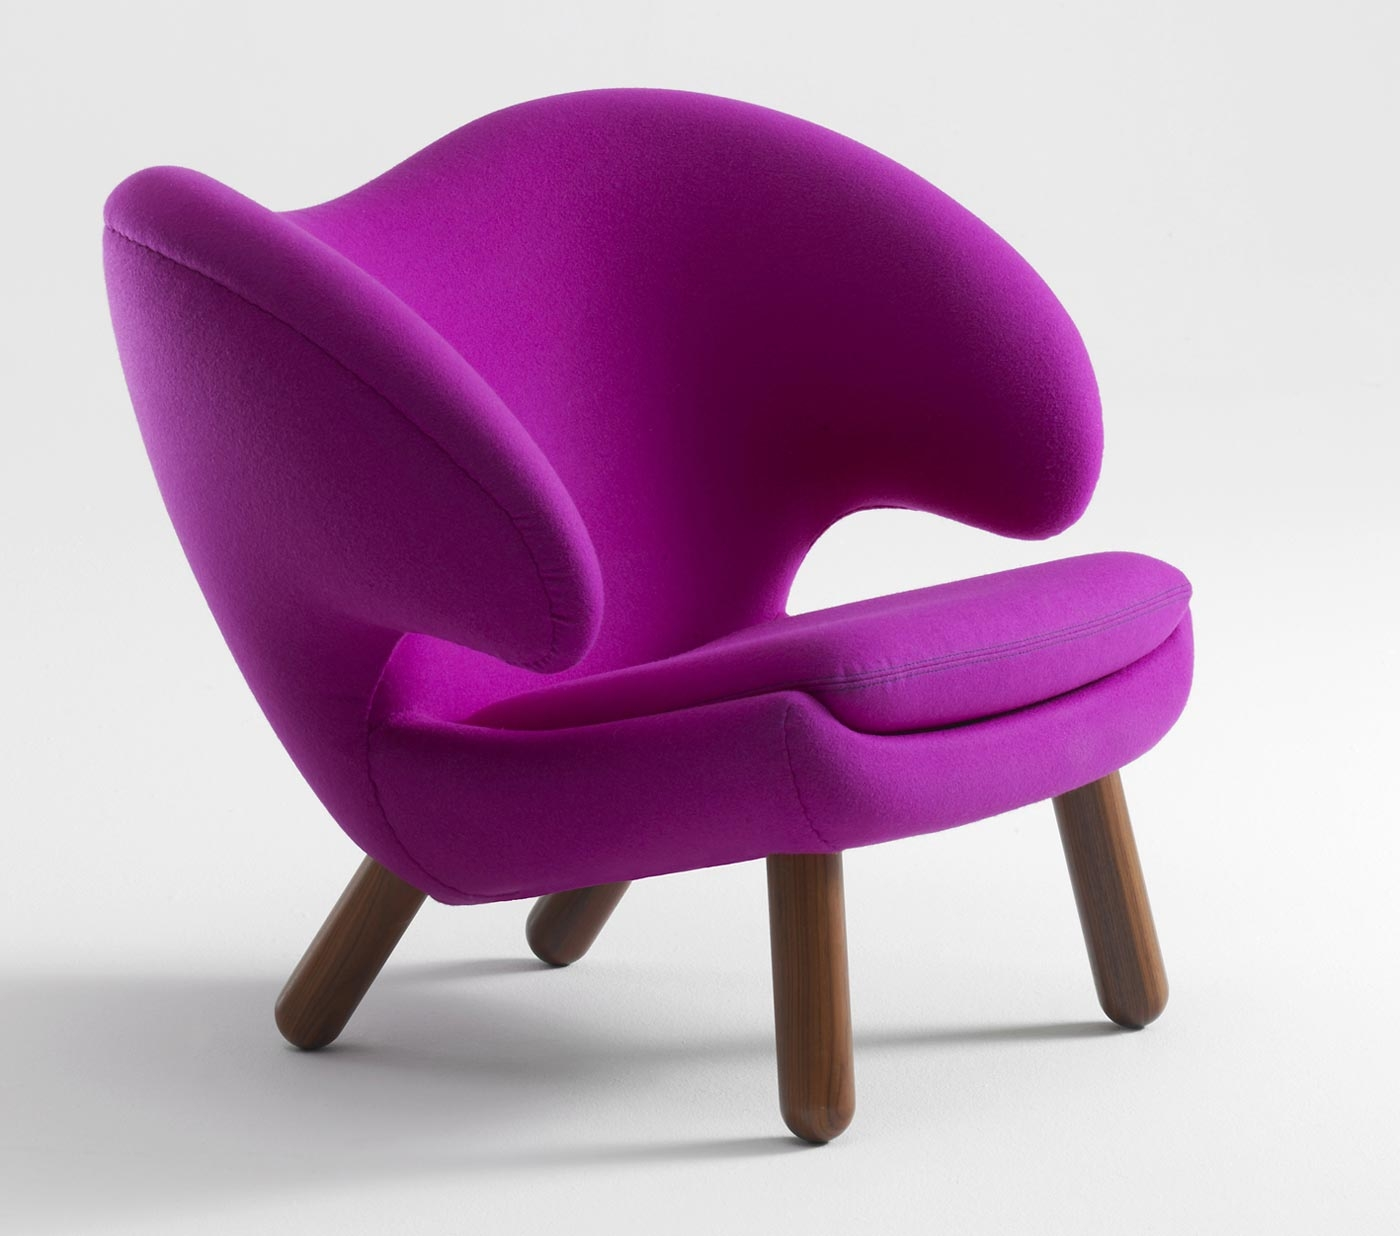 Modern Sofa Chair In Contemporary Sofas And Chairs (Image 6 of 15)